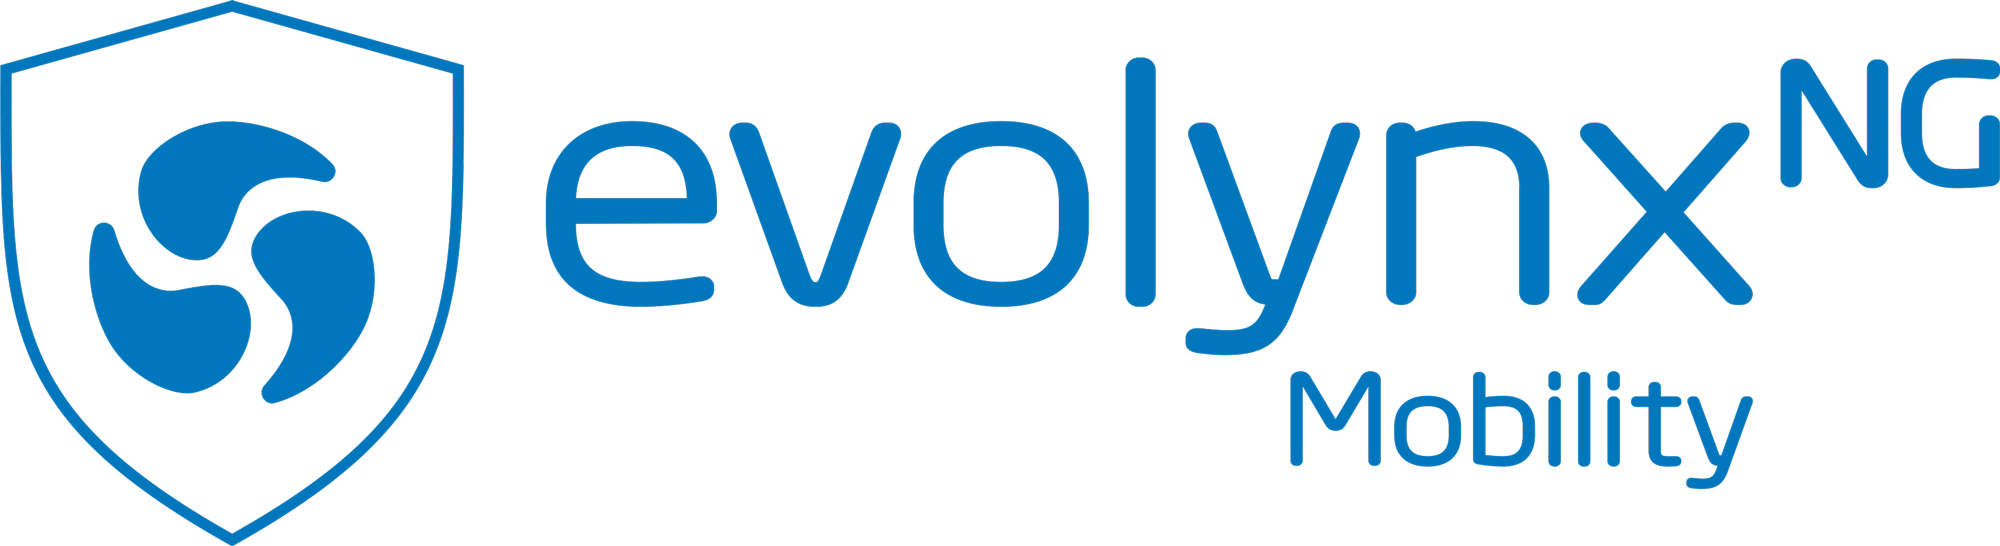 logo evolynxNG software mobility